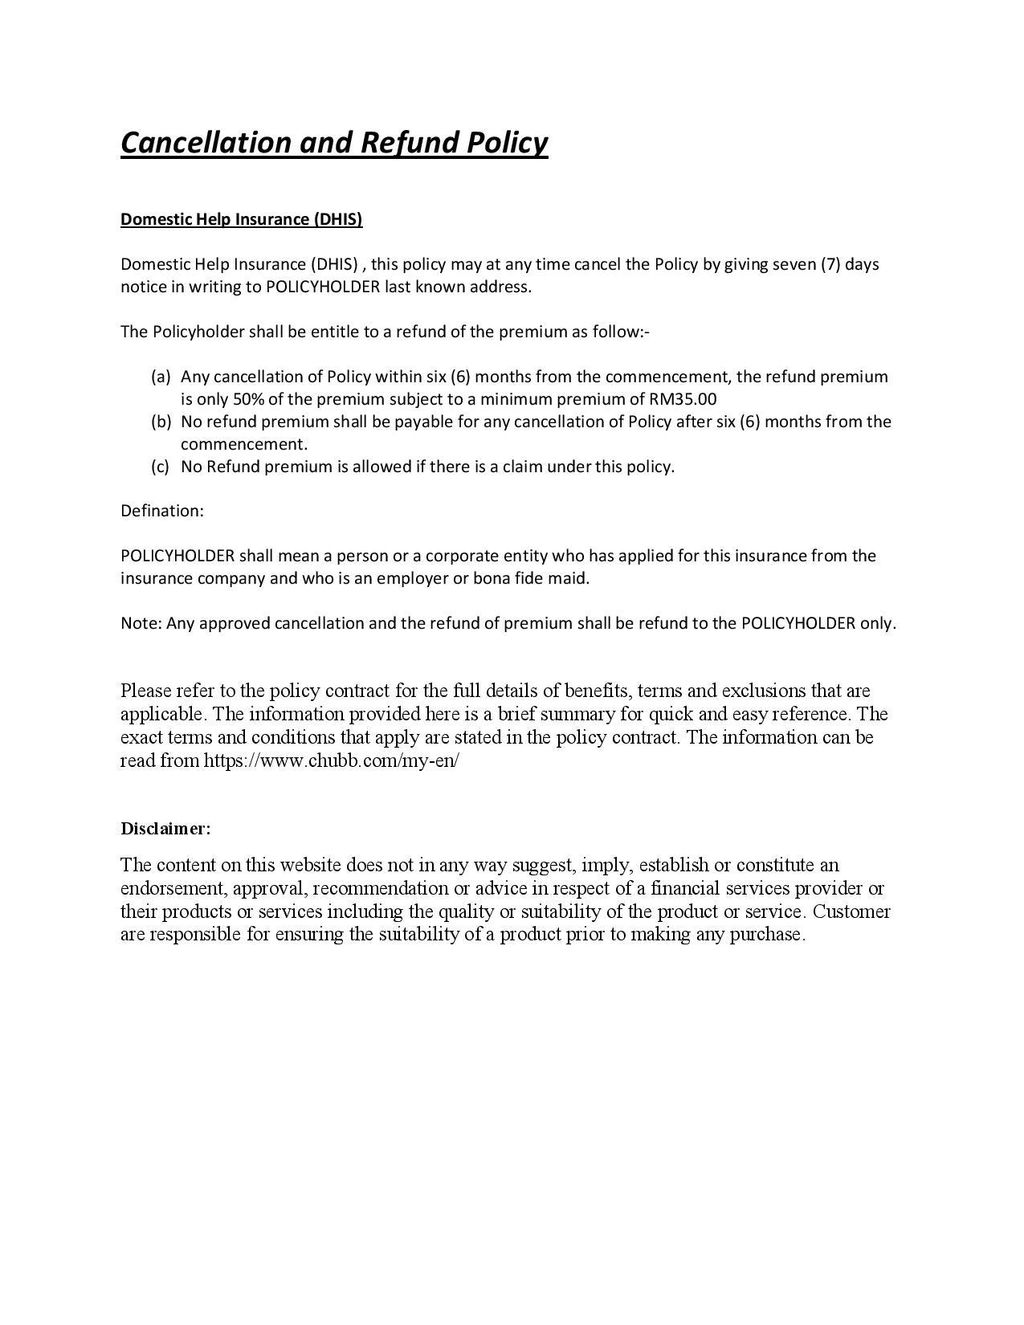 Refund Policy and Disclaimer Maid DHIS-page-001.jpg